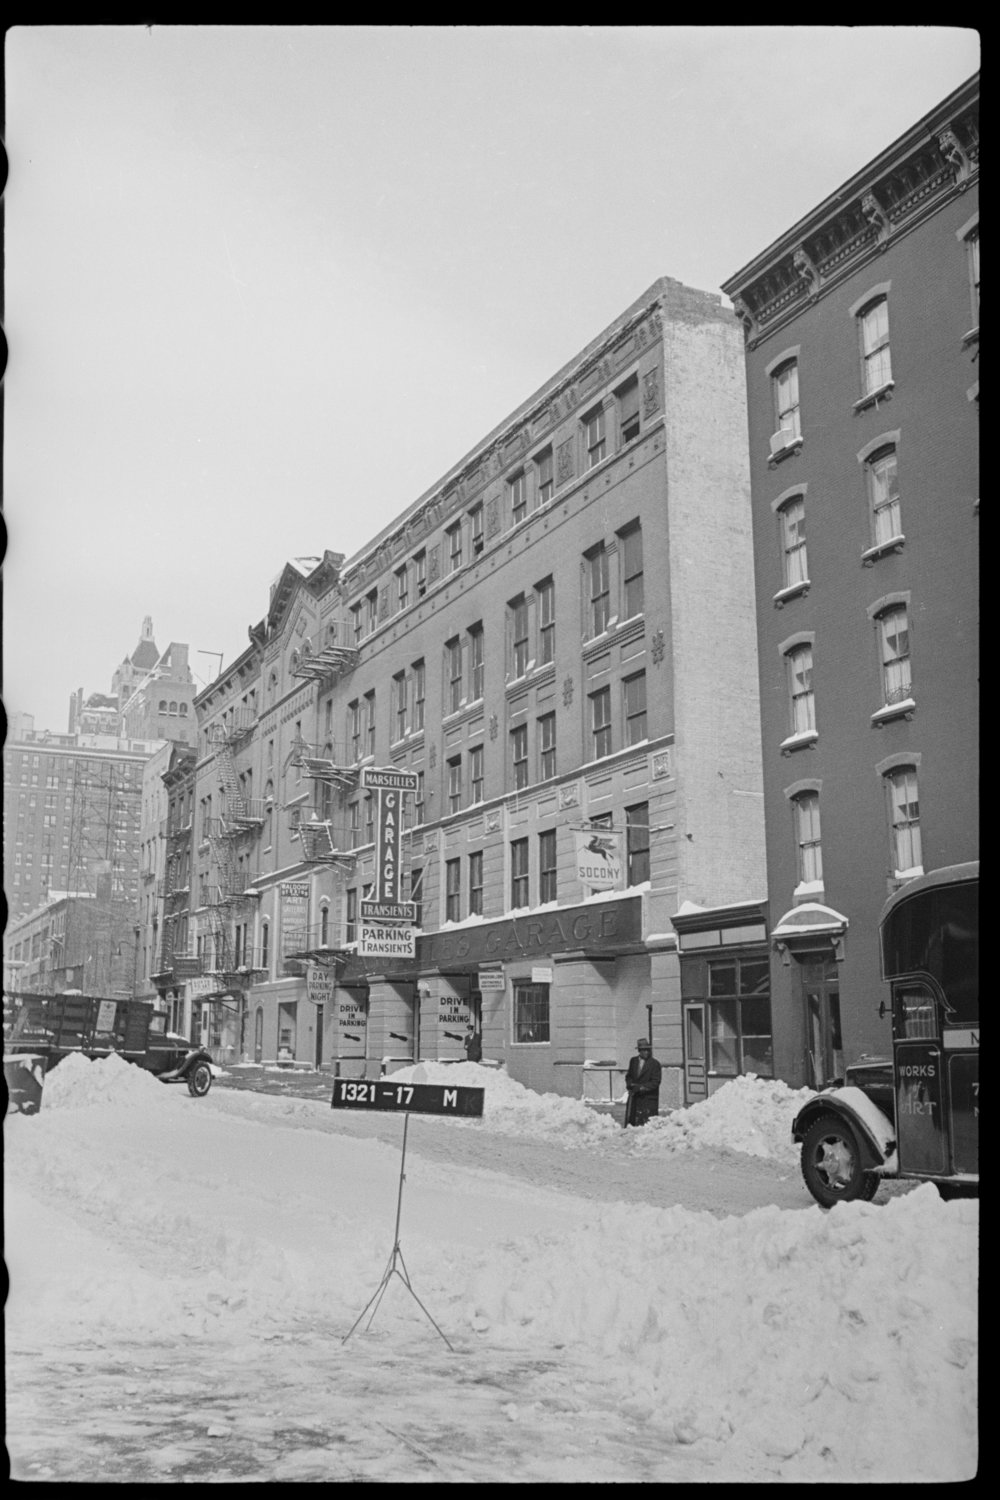 """The first Warhol """"Factory"""" was on the top floor of this building at 231 East 47th Street, until 1967. Department of Finance Collection, NYC Municipal Archives."""